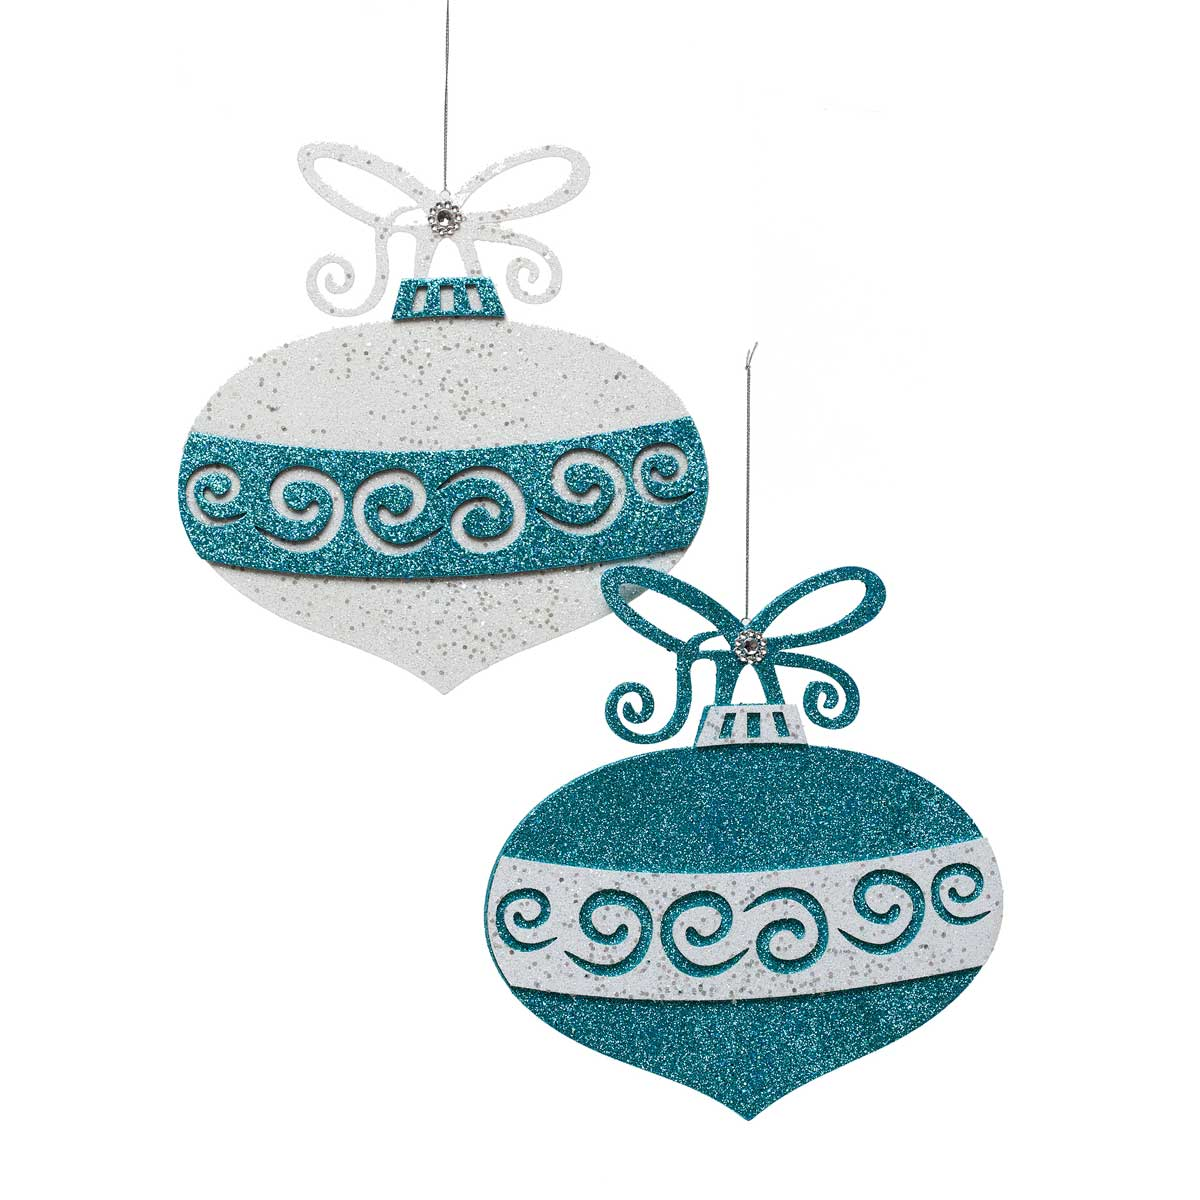 RETRO SPARKLE CUTOUT ORNAMENT SET OF 2 TEAL/WHITE